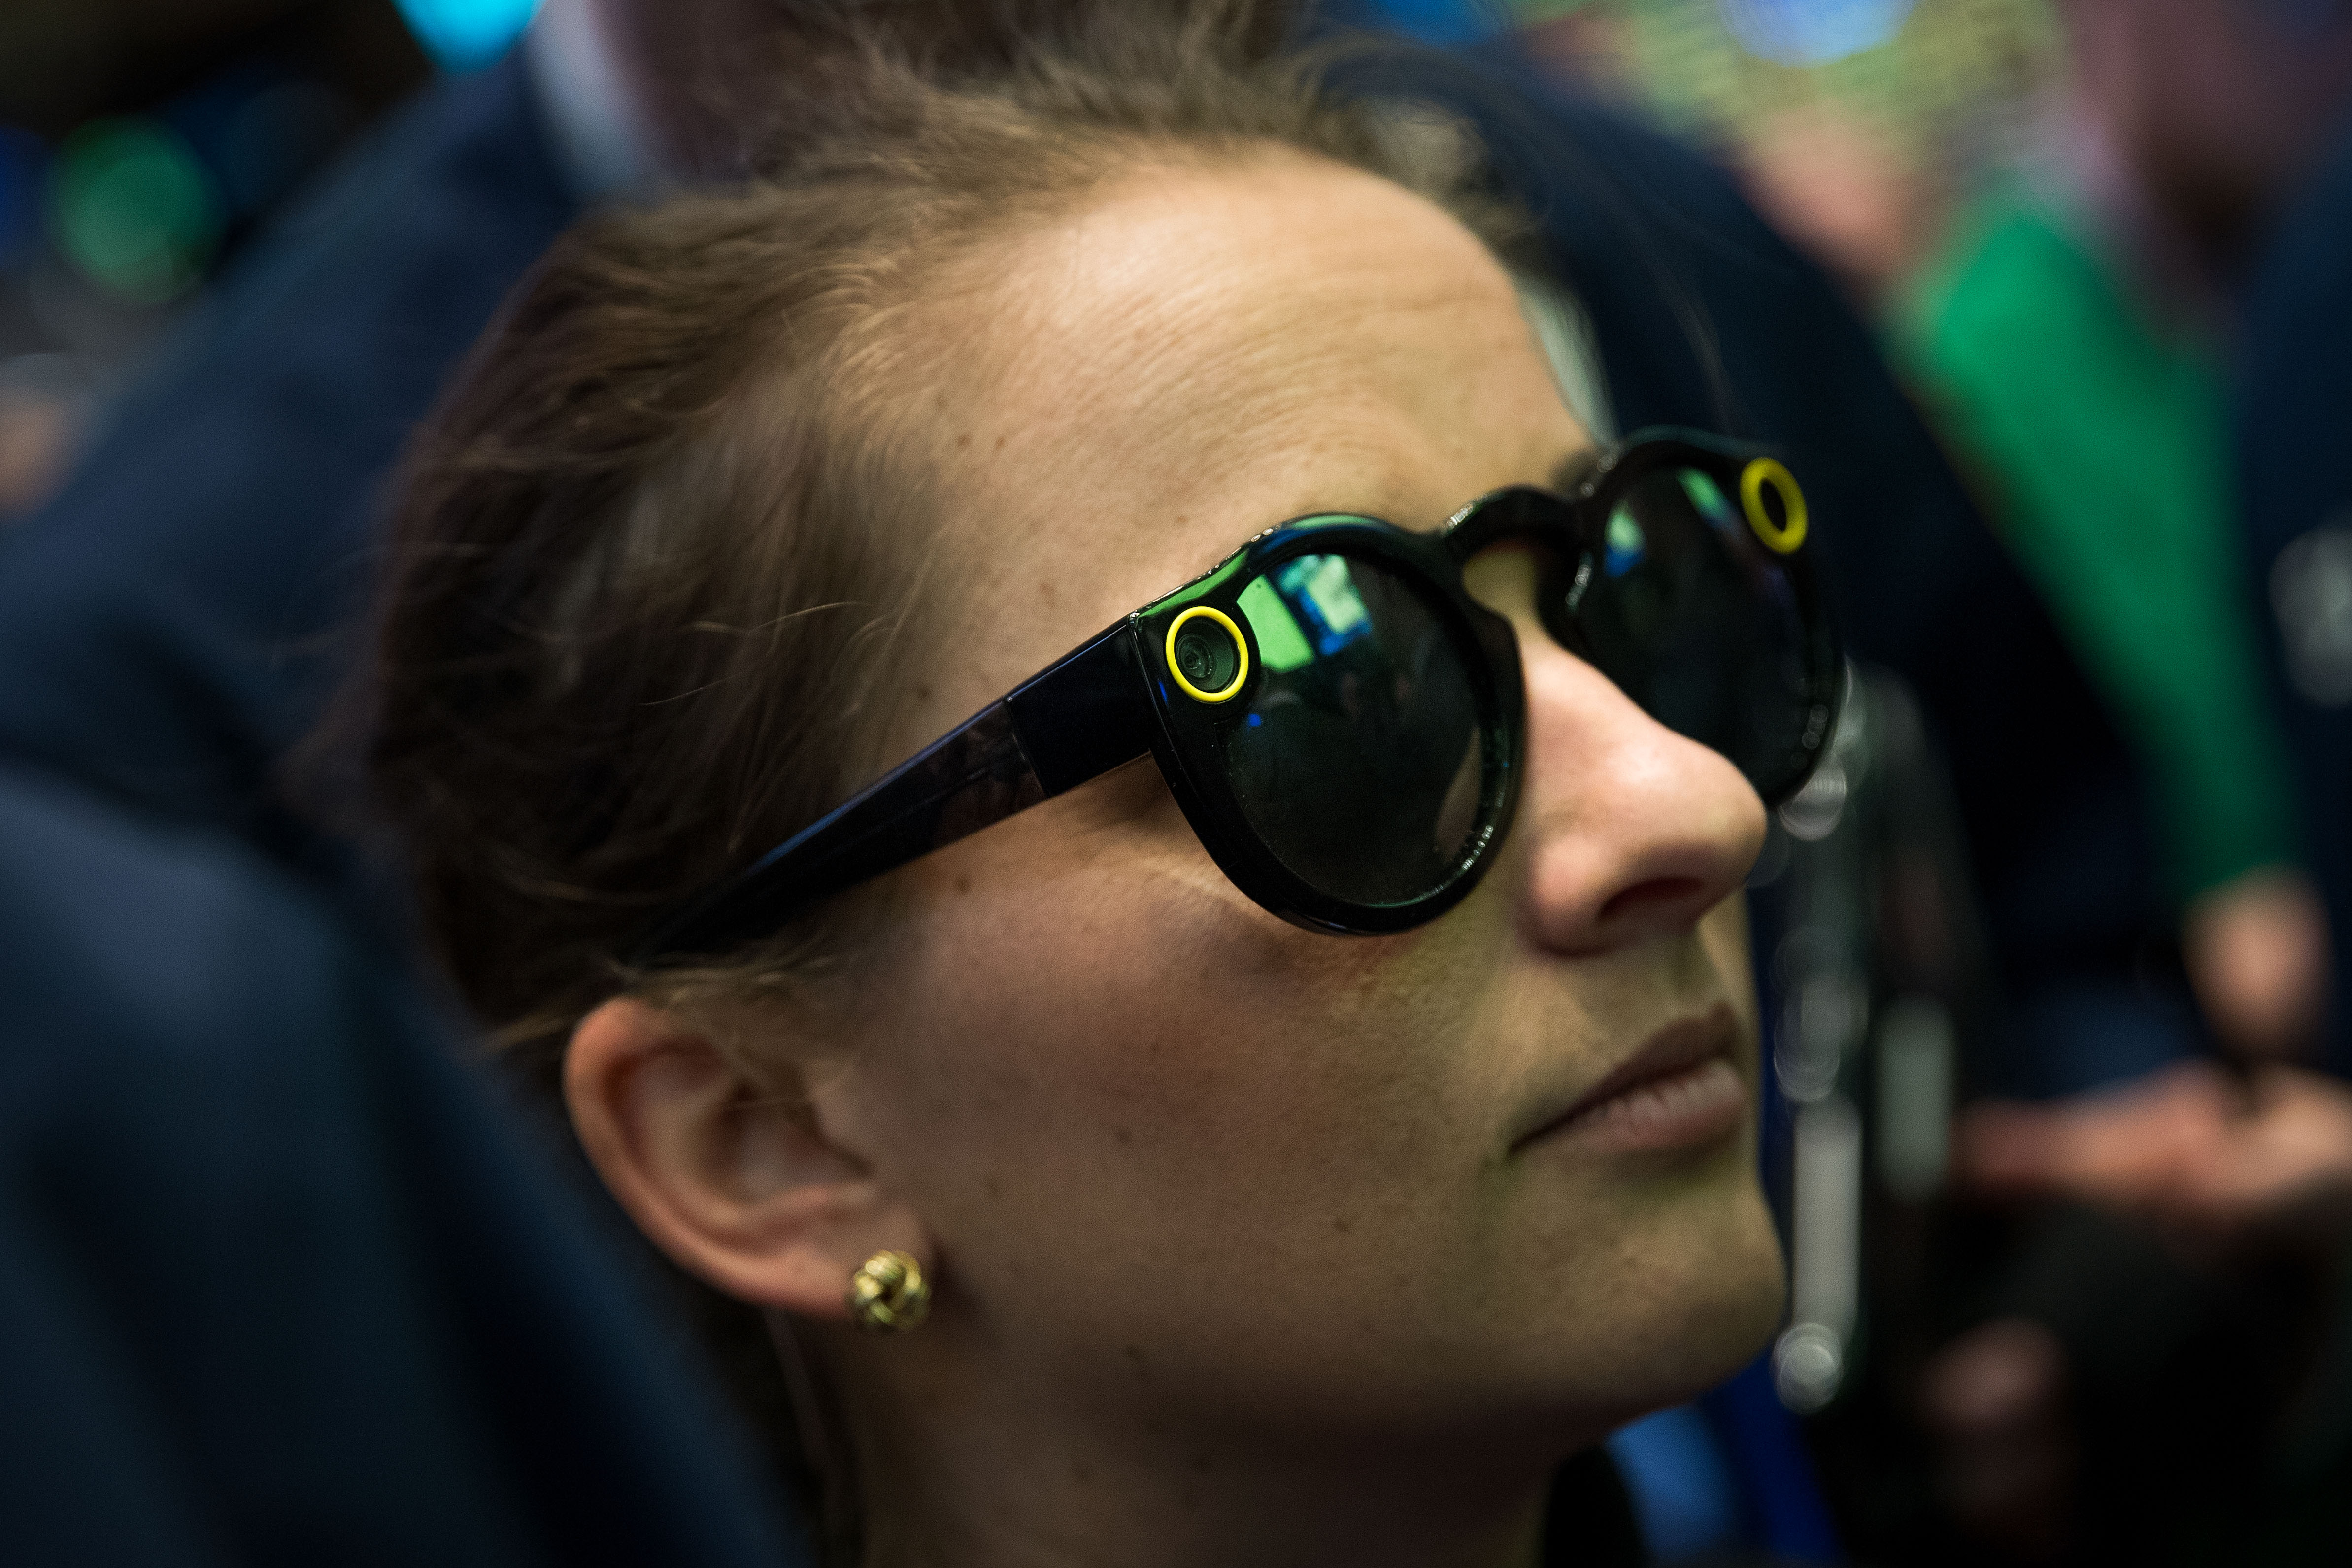 A woman wearing Snap Spectacles